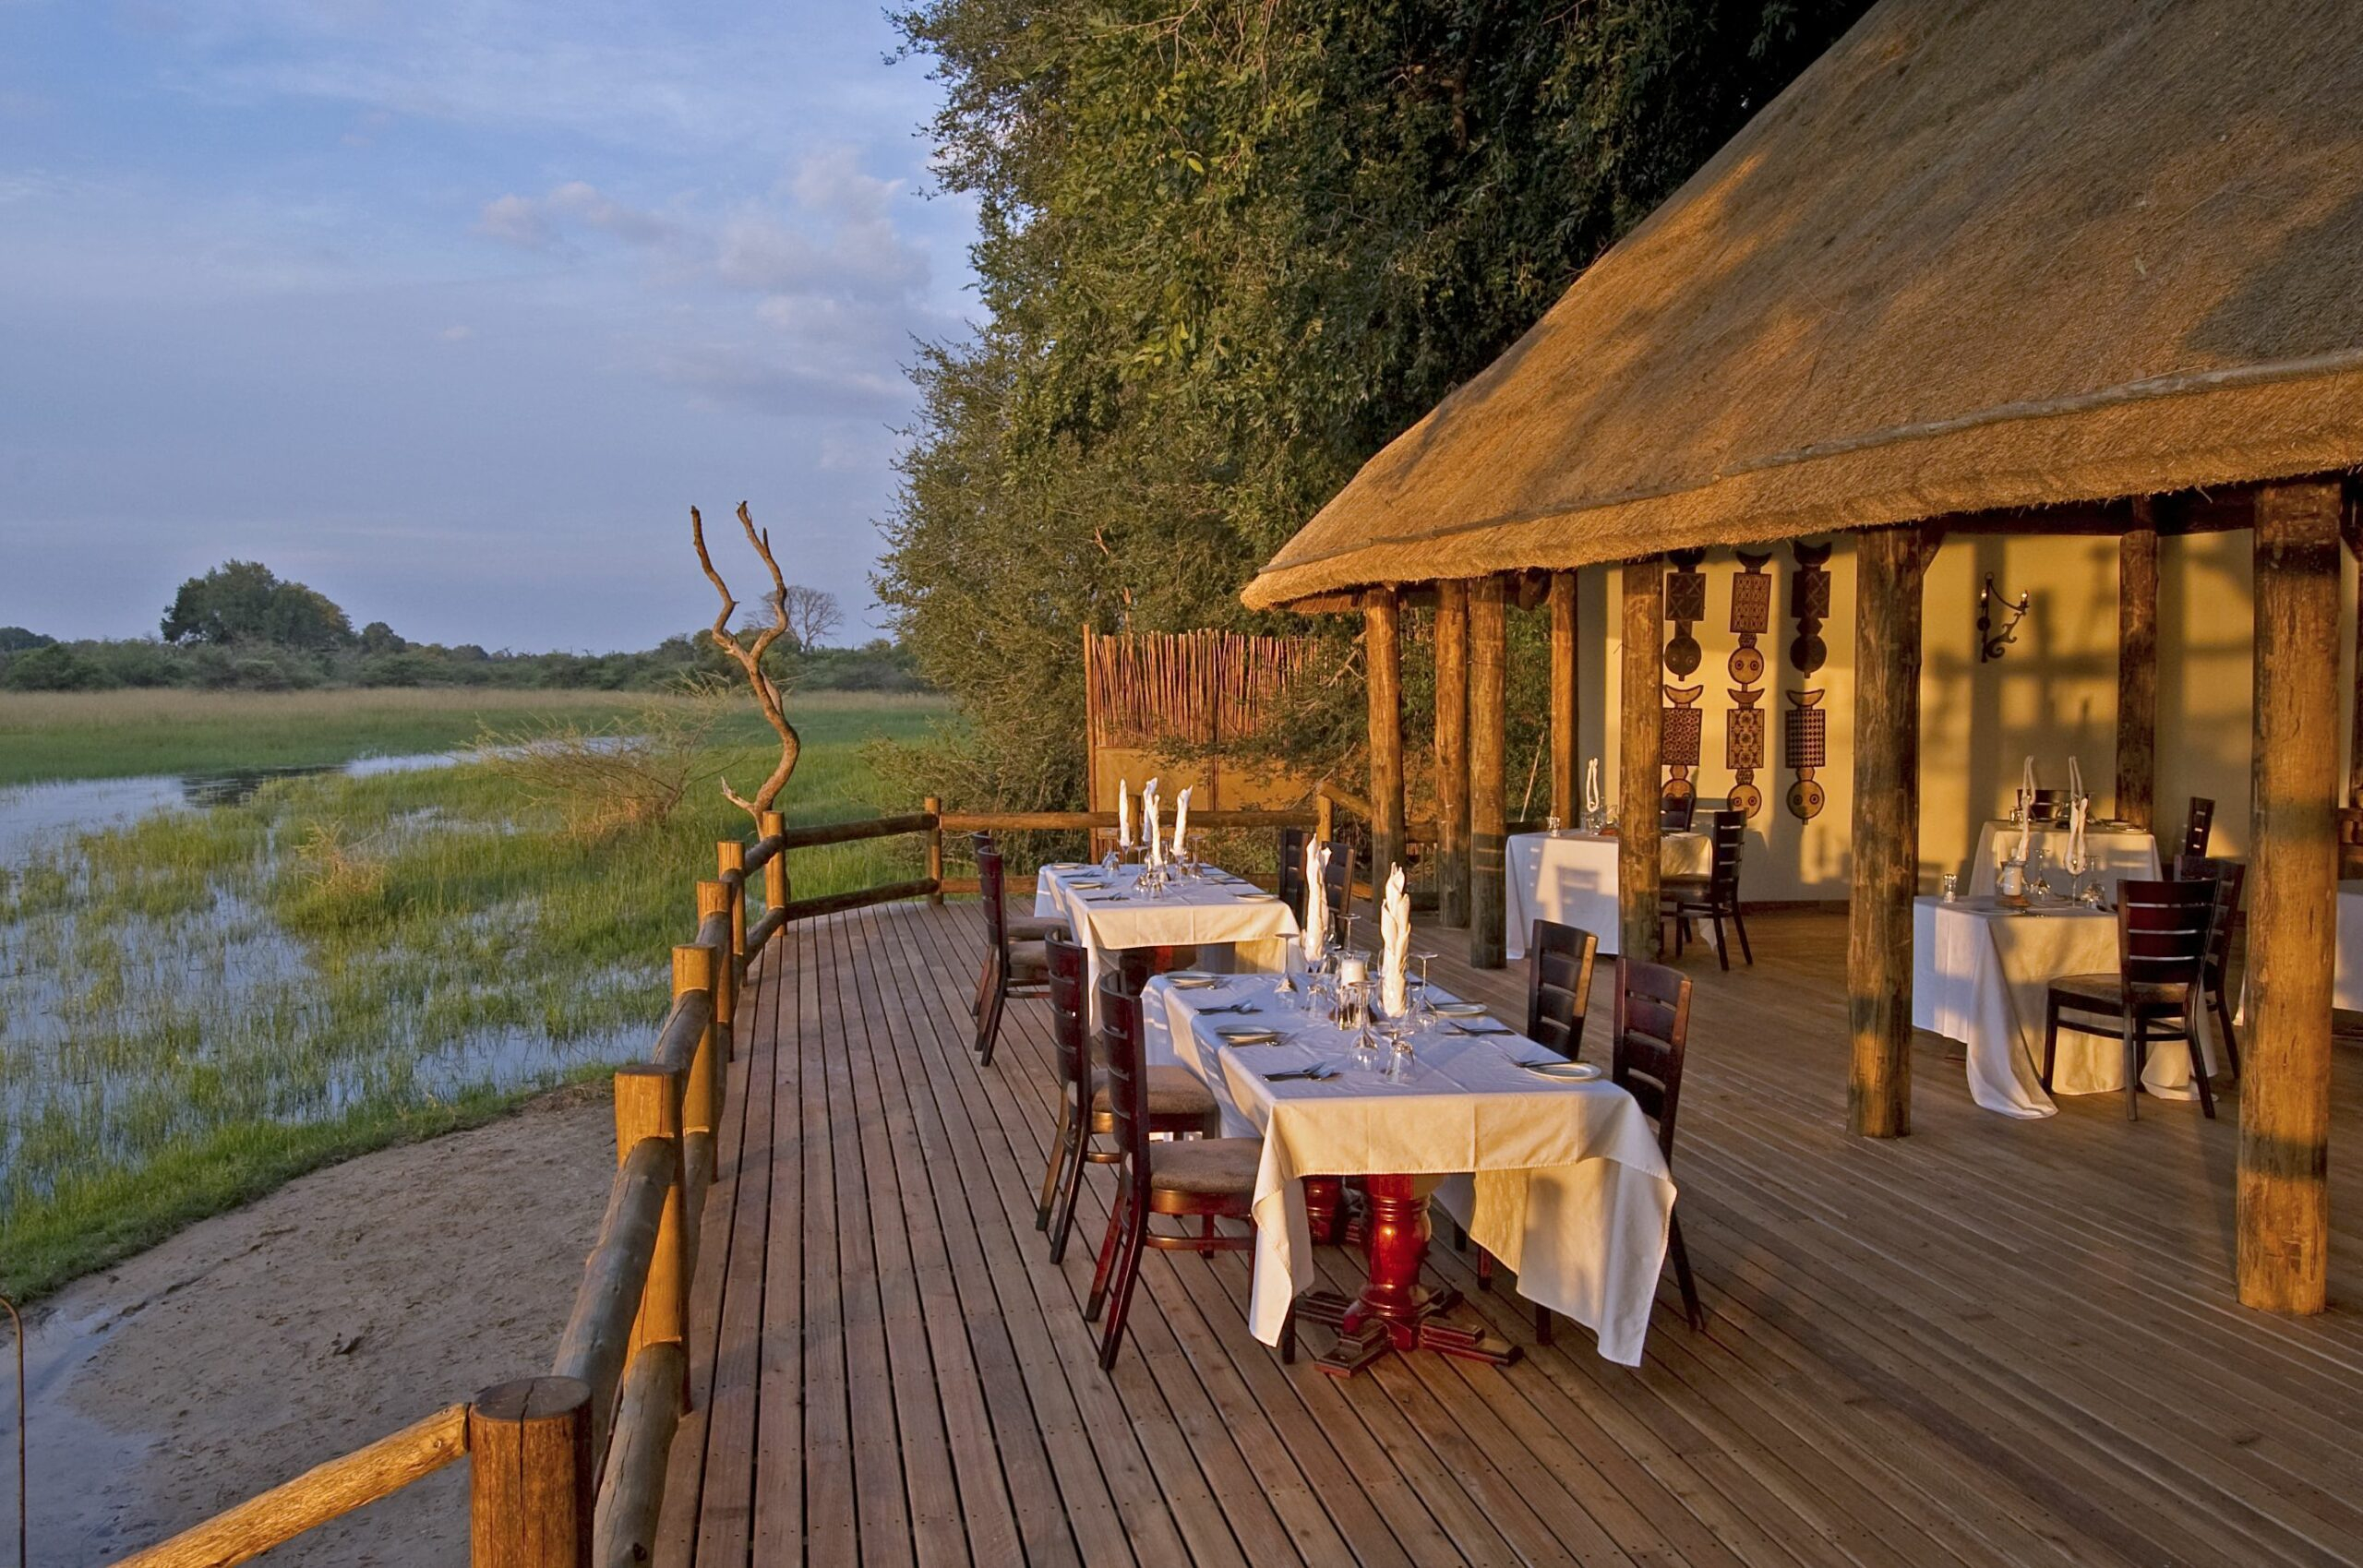 chief' camp main area outdoor view on our Zimbabwe and Botswana safari